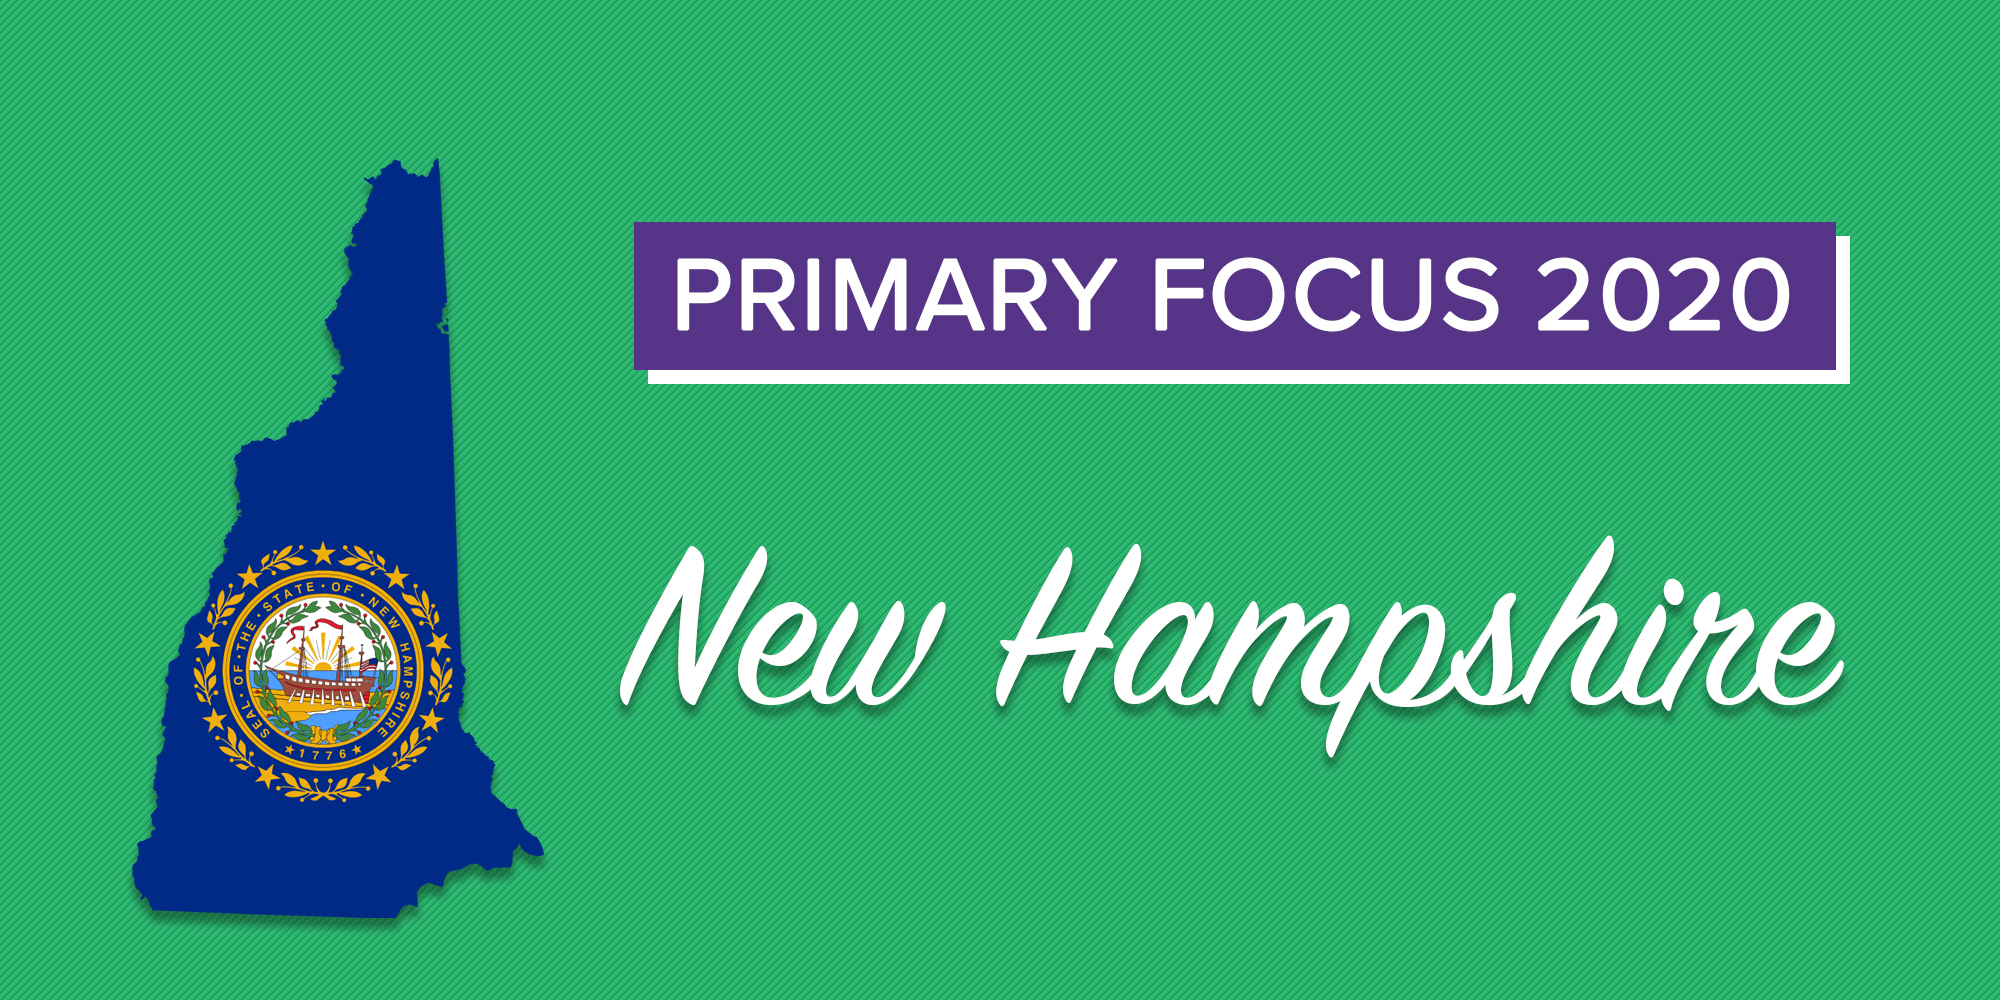 30% of Democratic votes in New Hampshire were